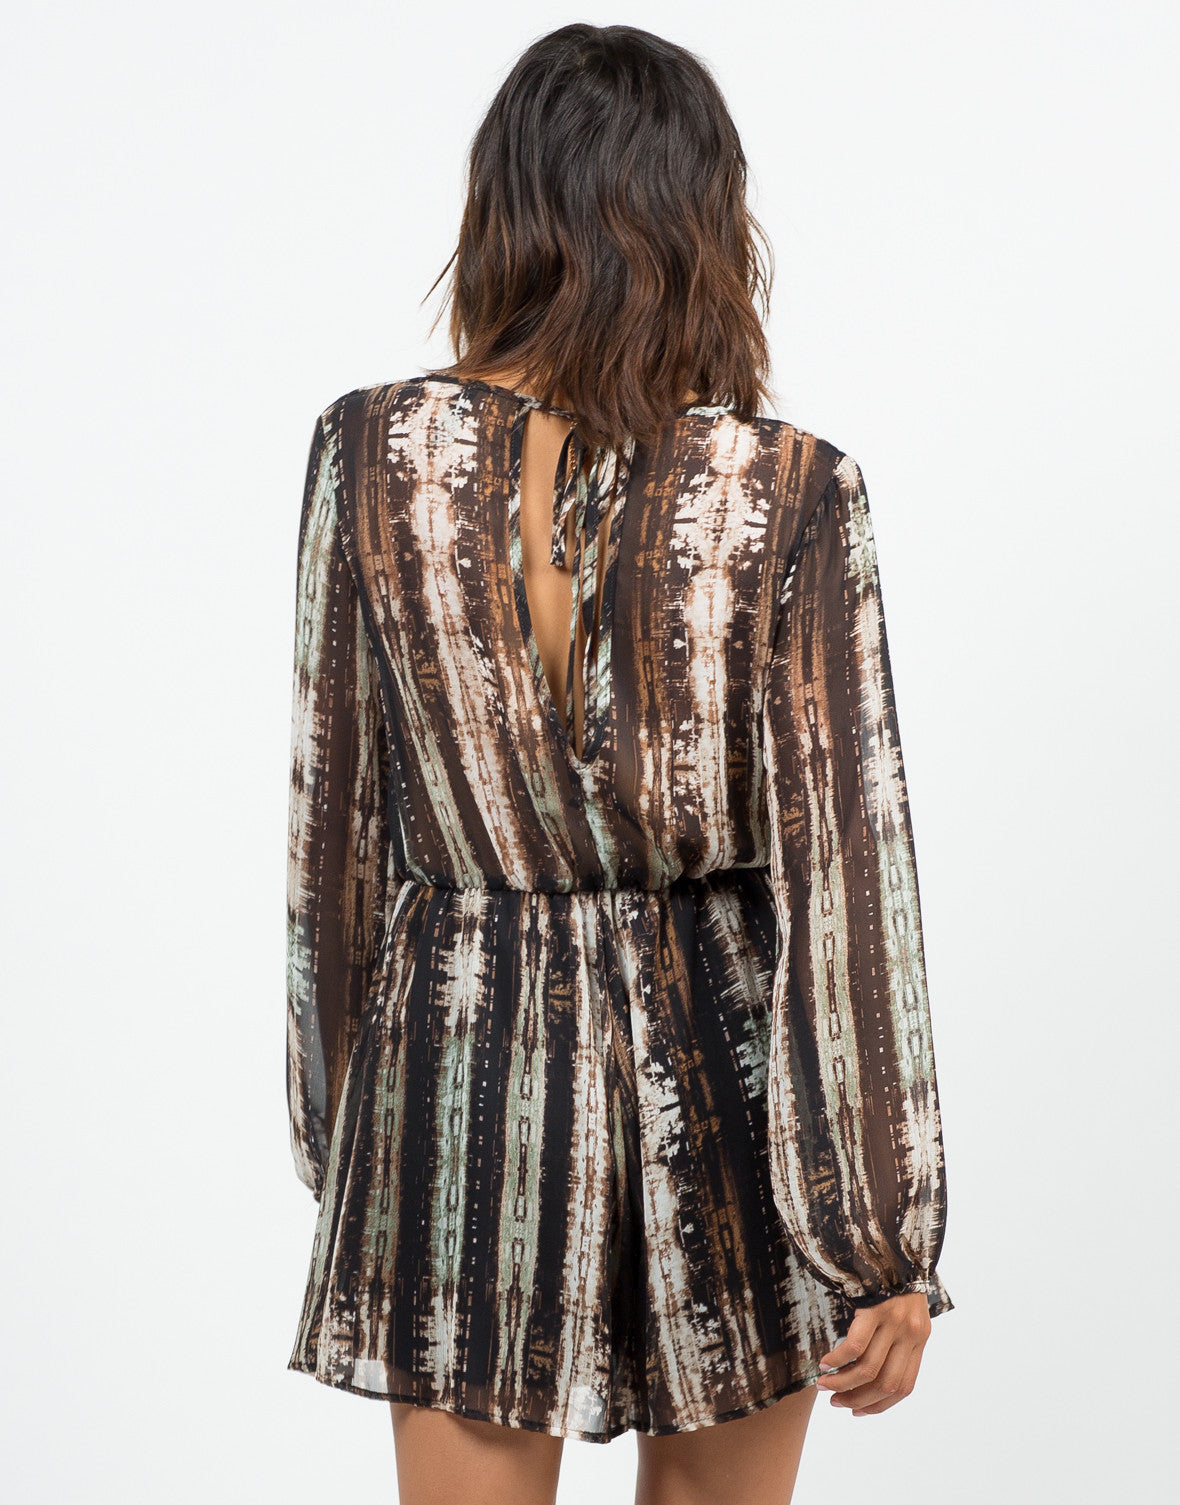 Back View of Chiffon Printed Romper